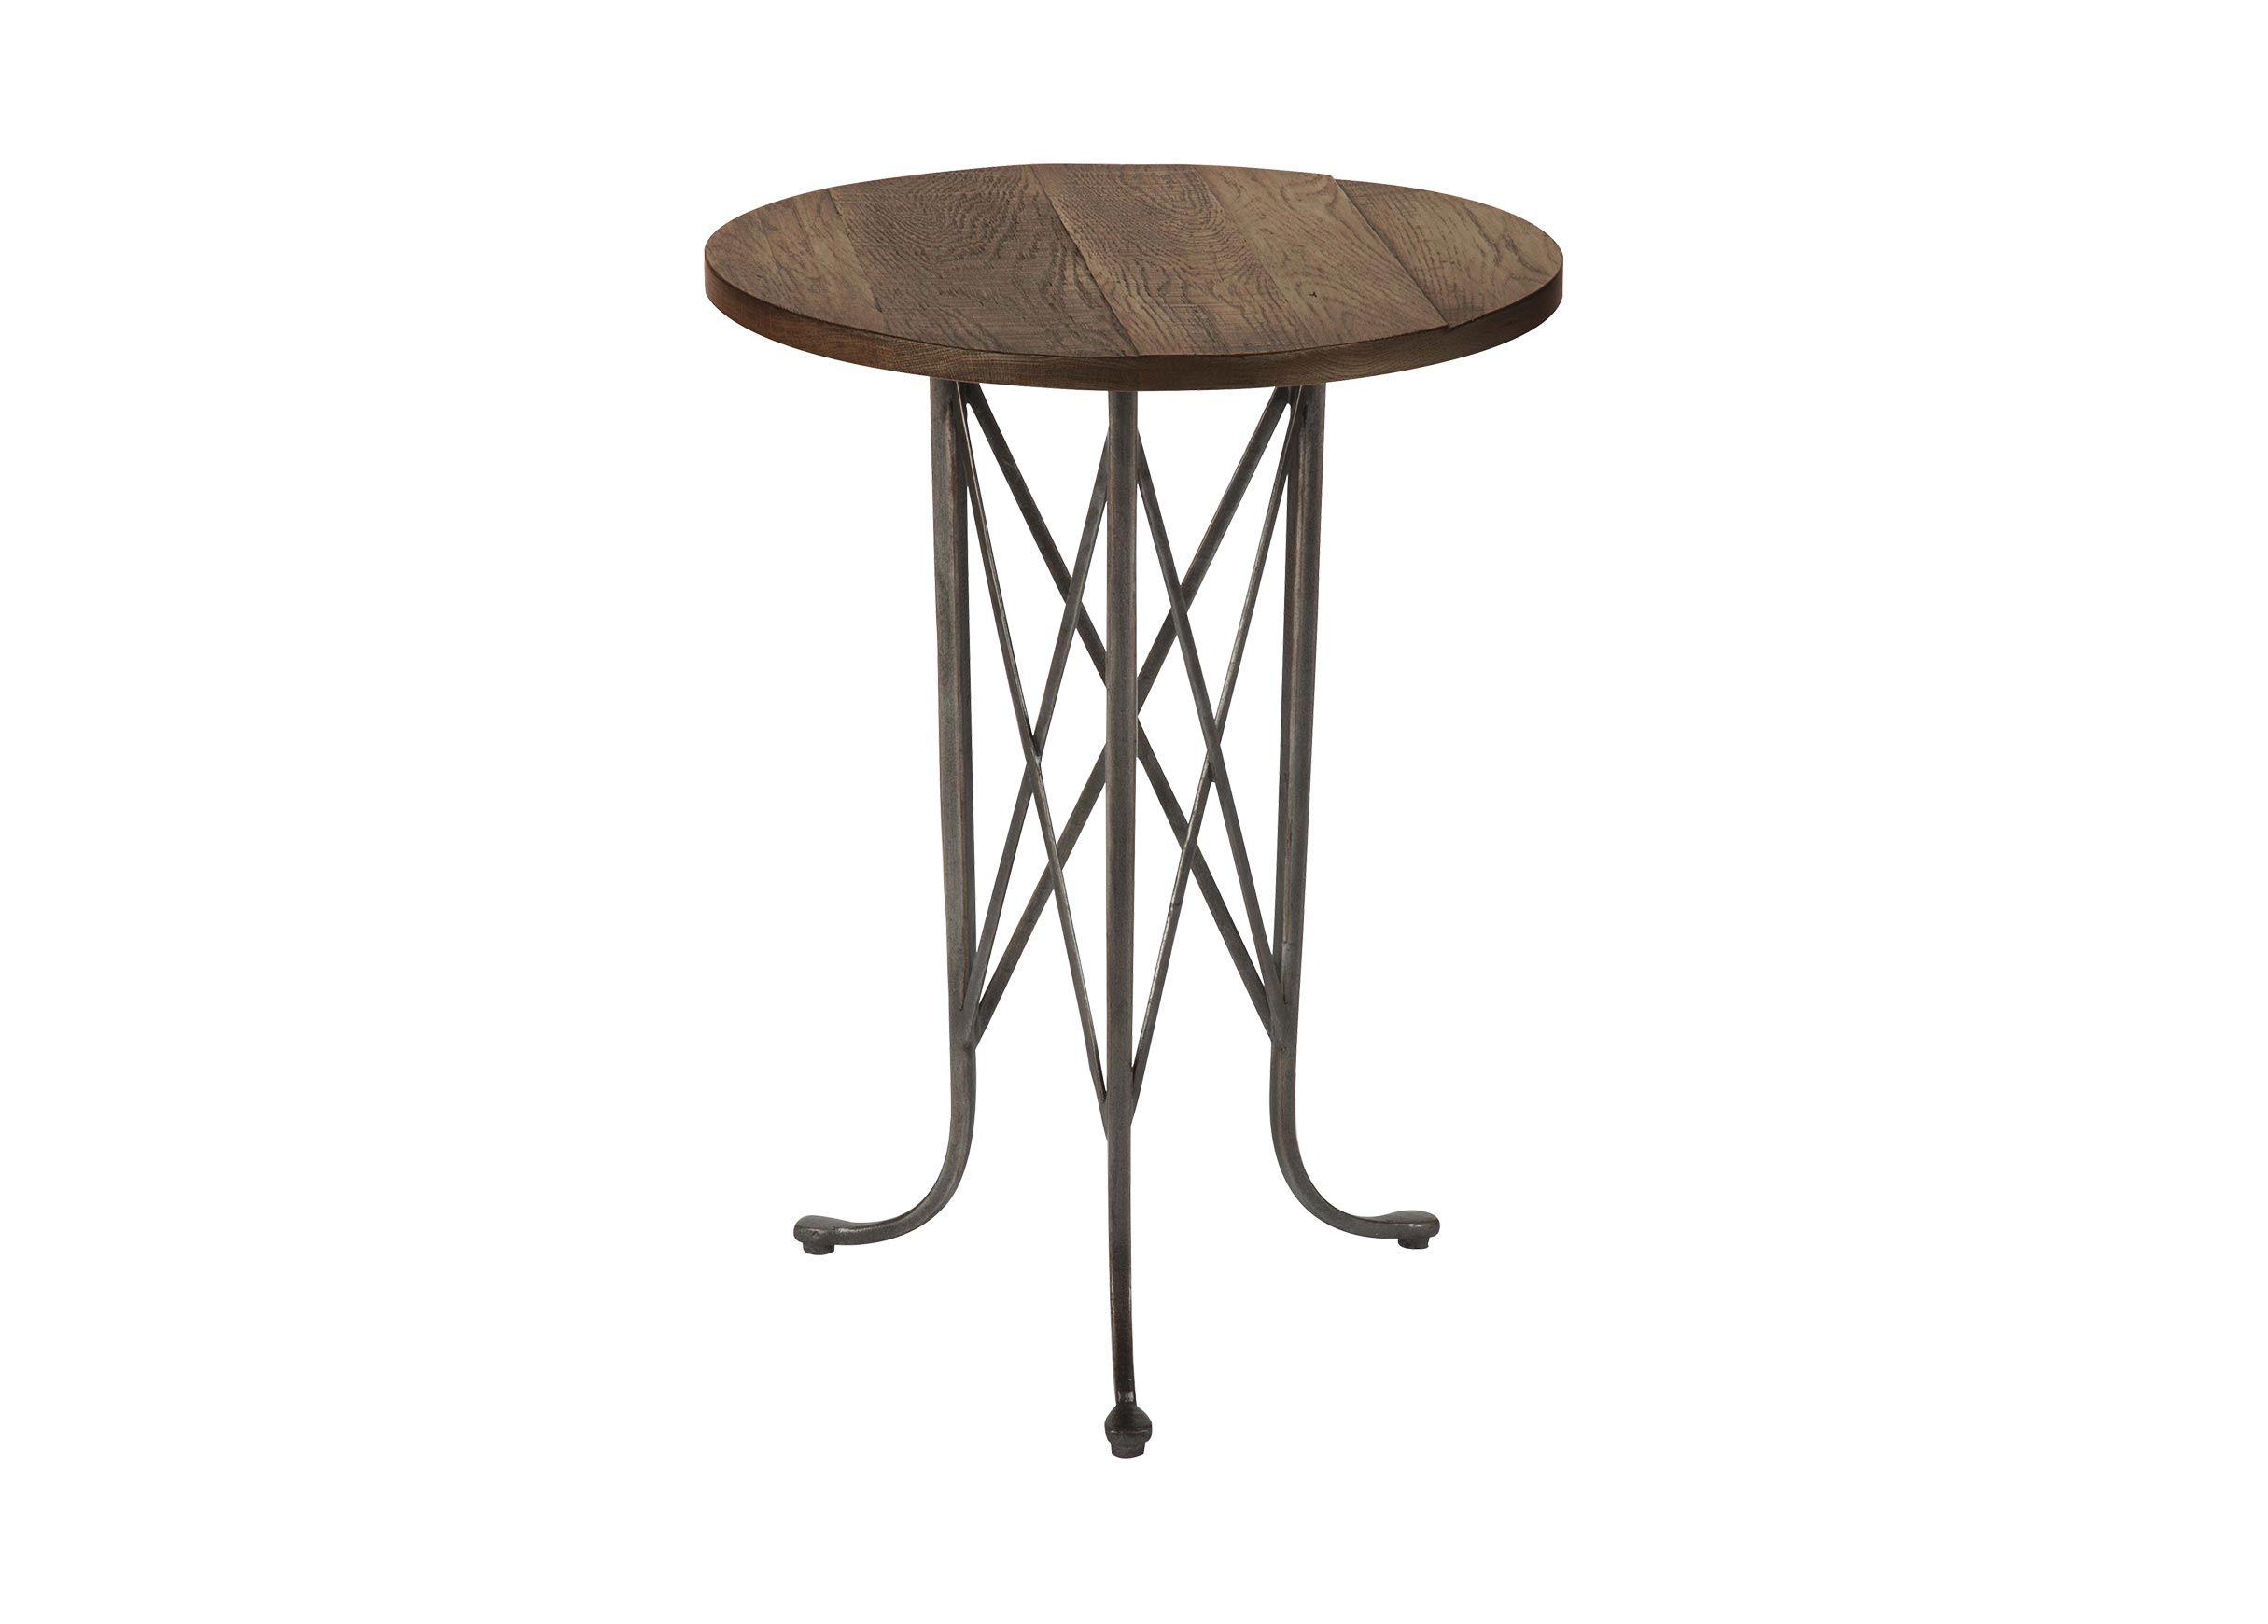 accent table tables ethan allen woven metal all modern furniture pier coupons target white chairs antique square pipe autumn runner quilt patterns low corner ashley coffee and end